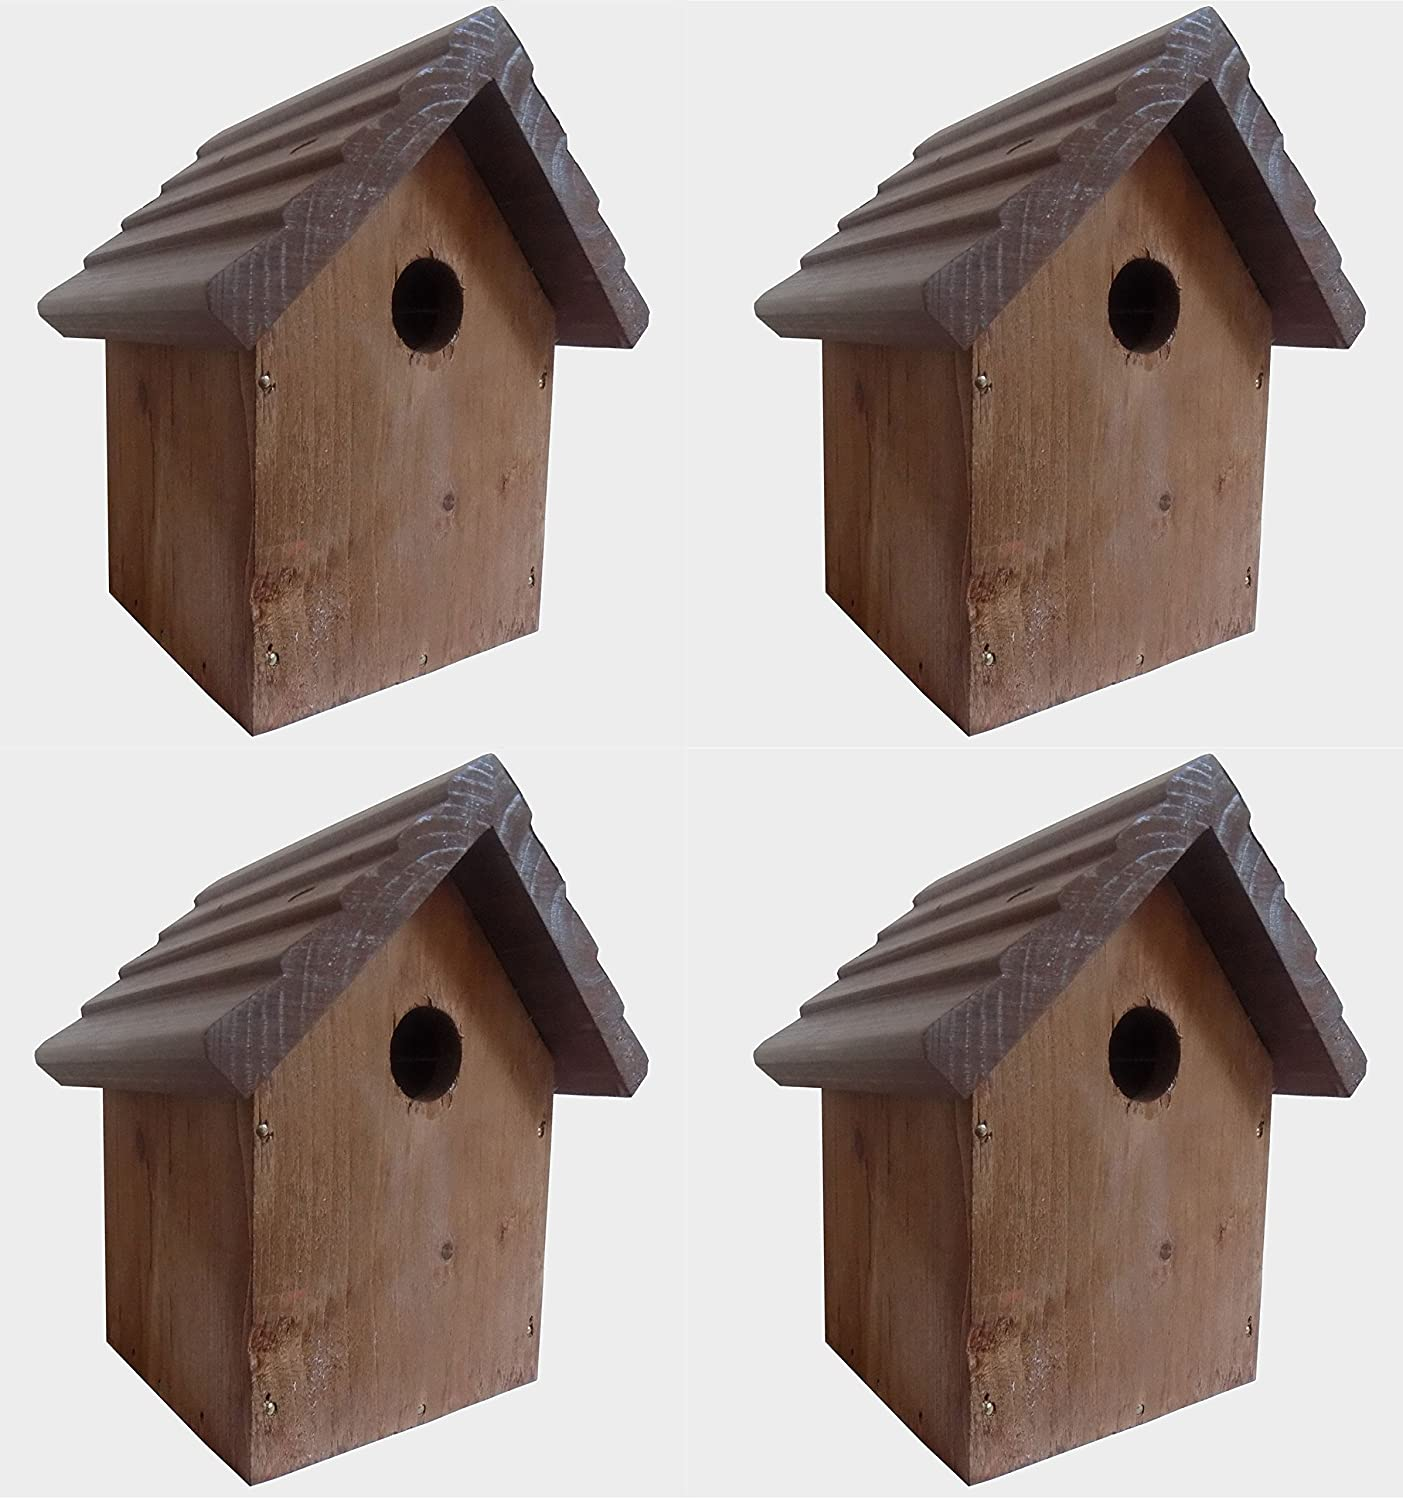 Set of 4 x Wooden Bird Boxes - Bird Box - Bird Houses - Wild Bird Home Rudding Wood